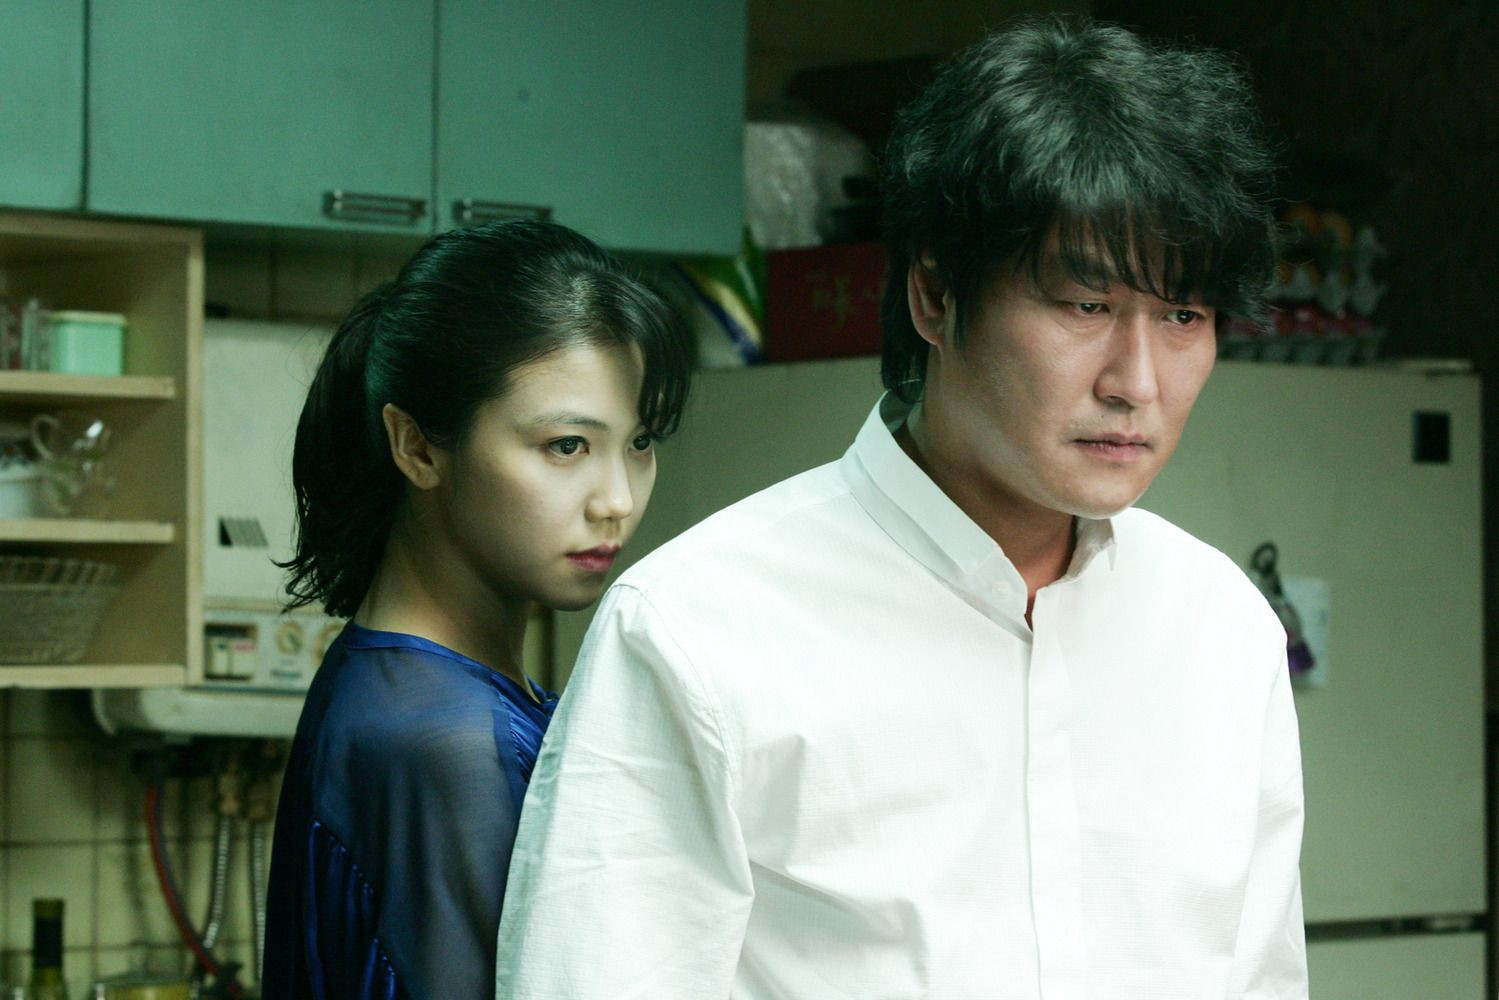 A woman is seen standing behind a man in a kitchen. They are both staring in the same direction.